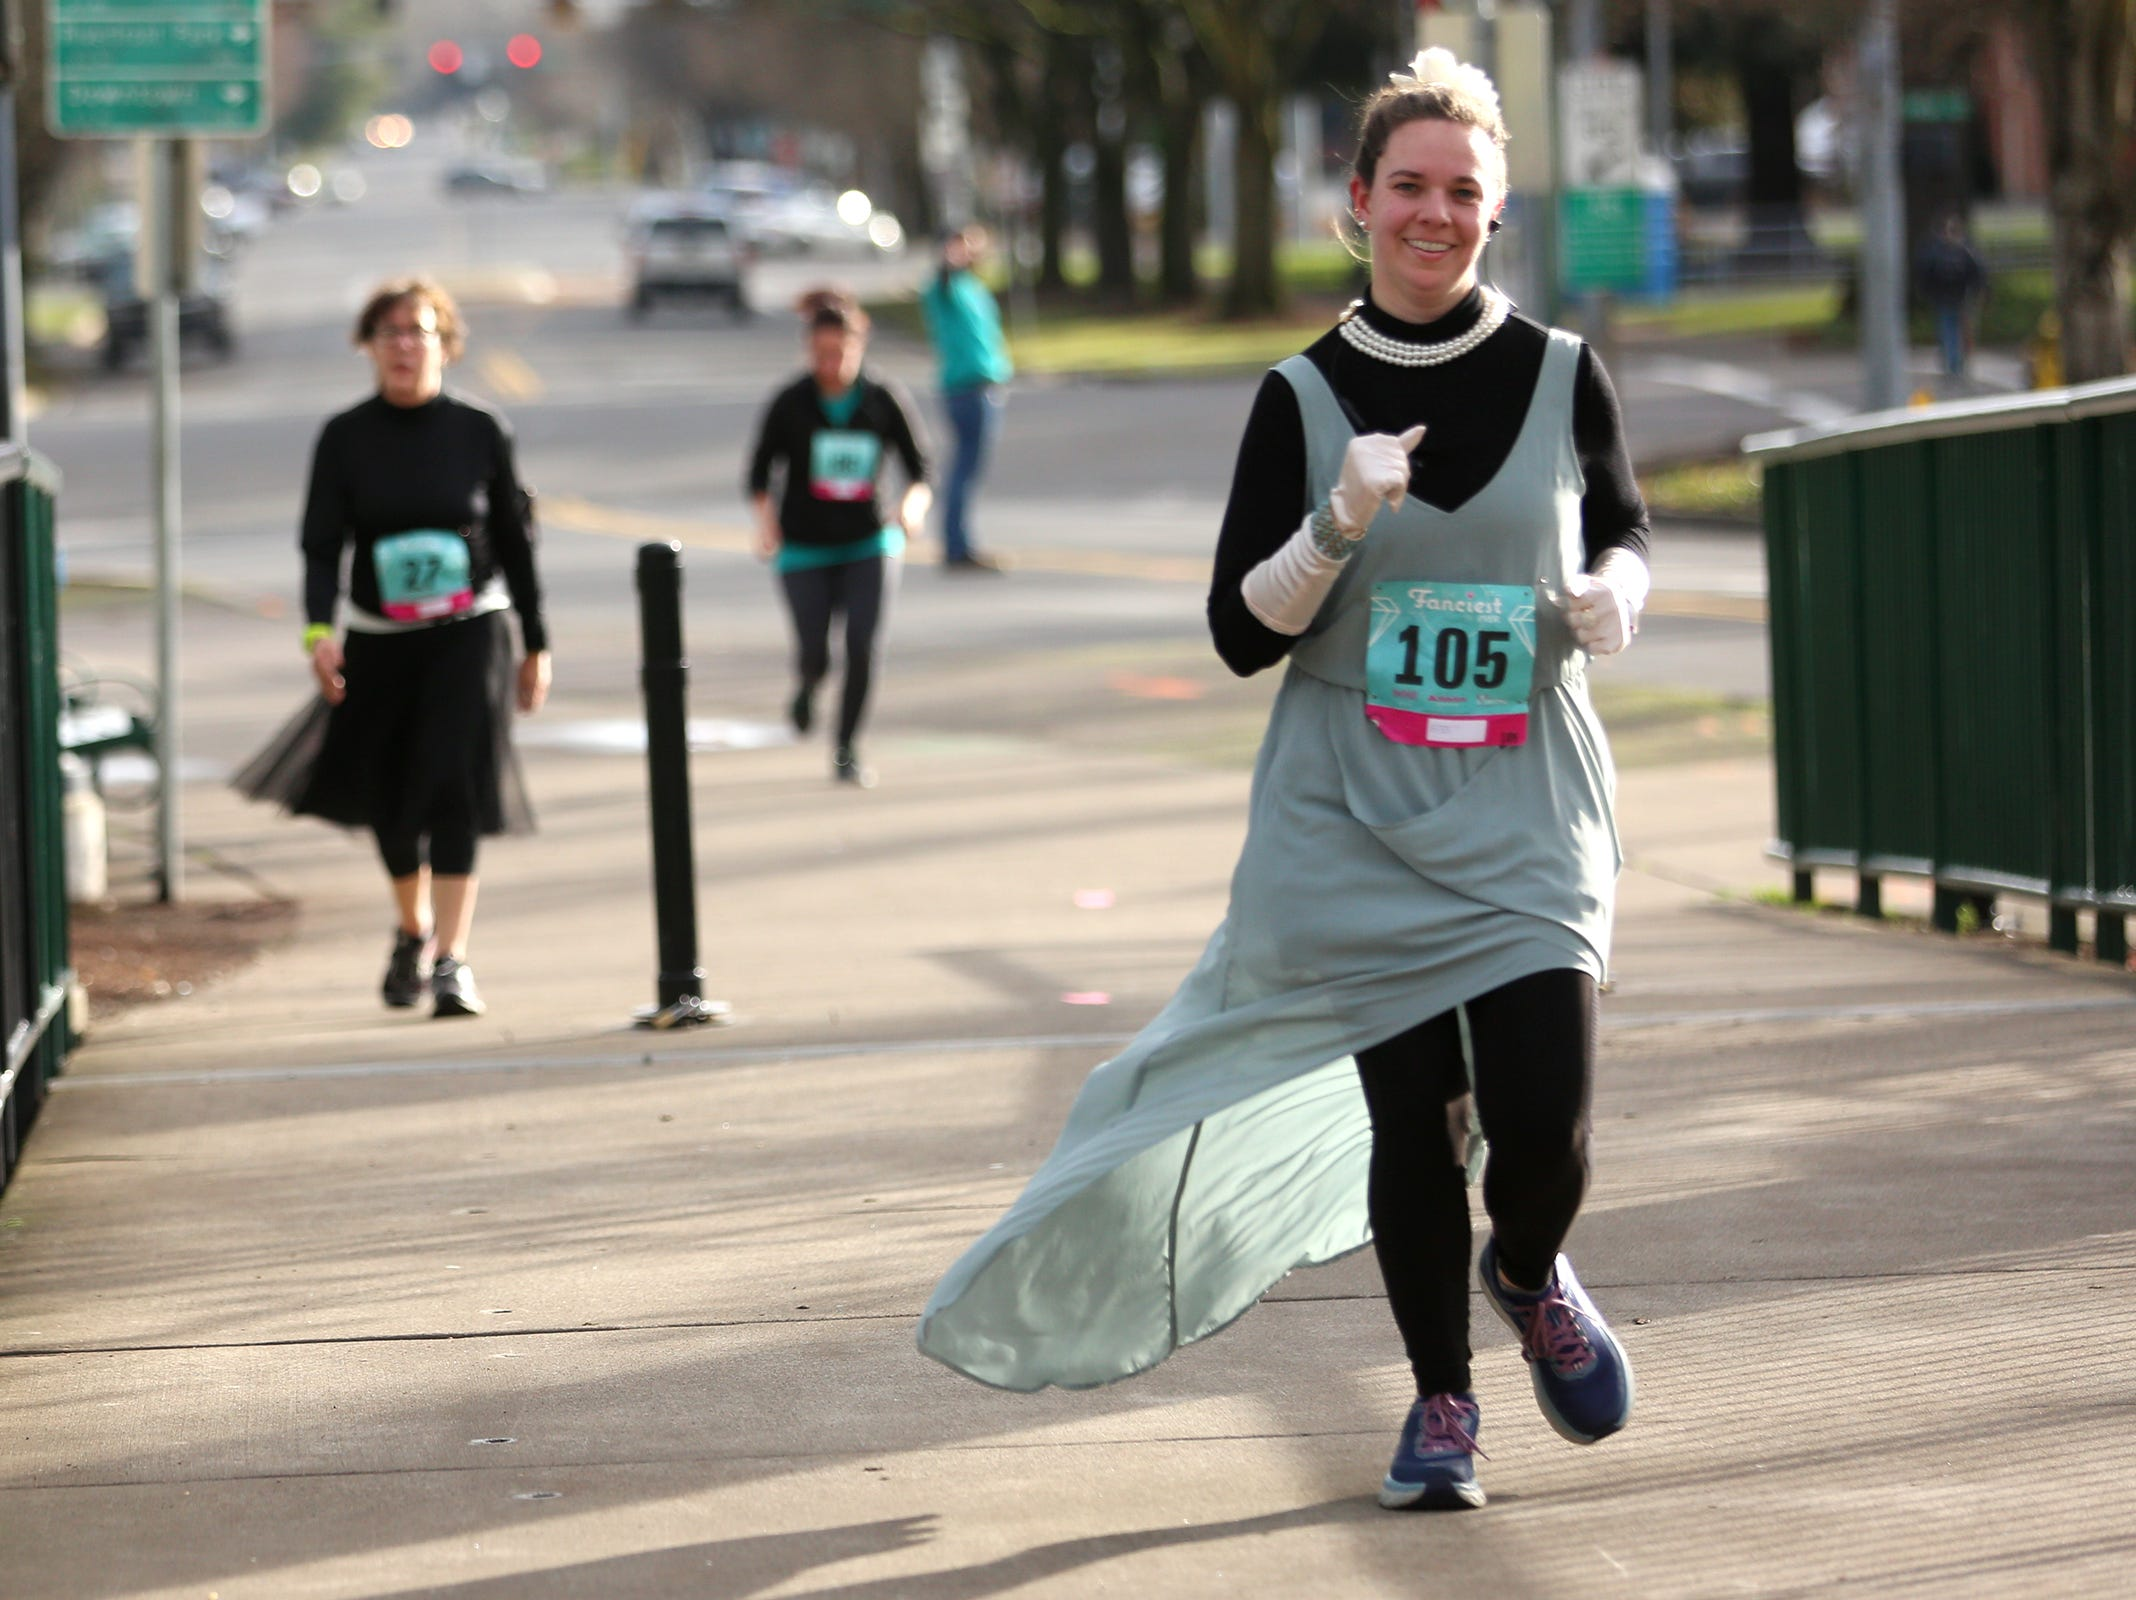 Runners make their way across the Union Street Bridge during The Fanciest 5K. Ever. in Salem on Saturday, Dec. 29. All of the money raised will go directly to advocacy for sex-trafficking survivors in the mid-Willamette Valley.